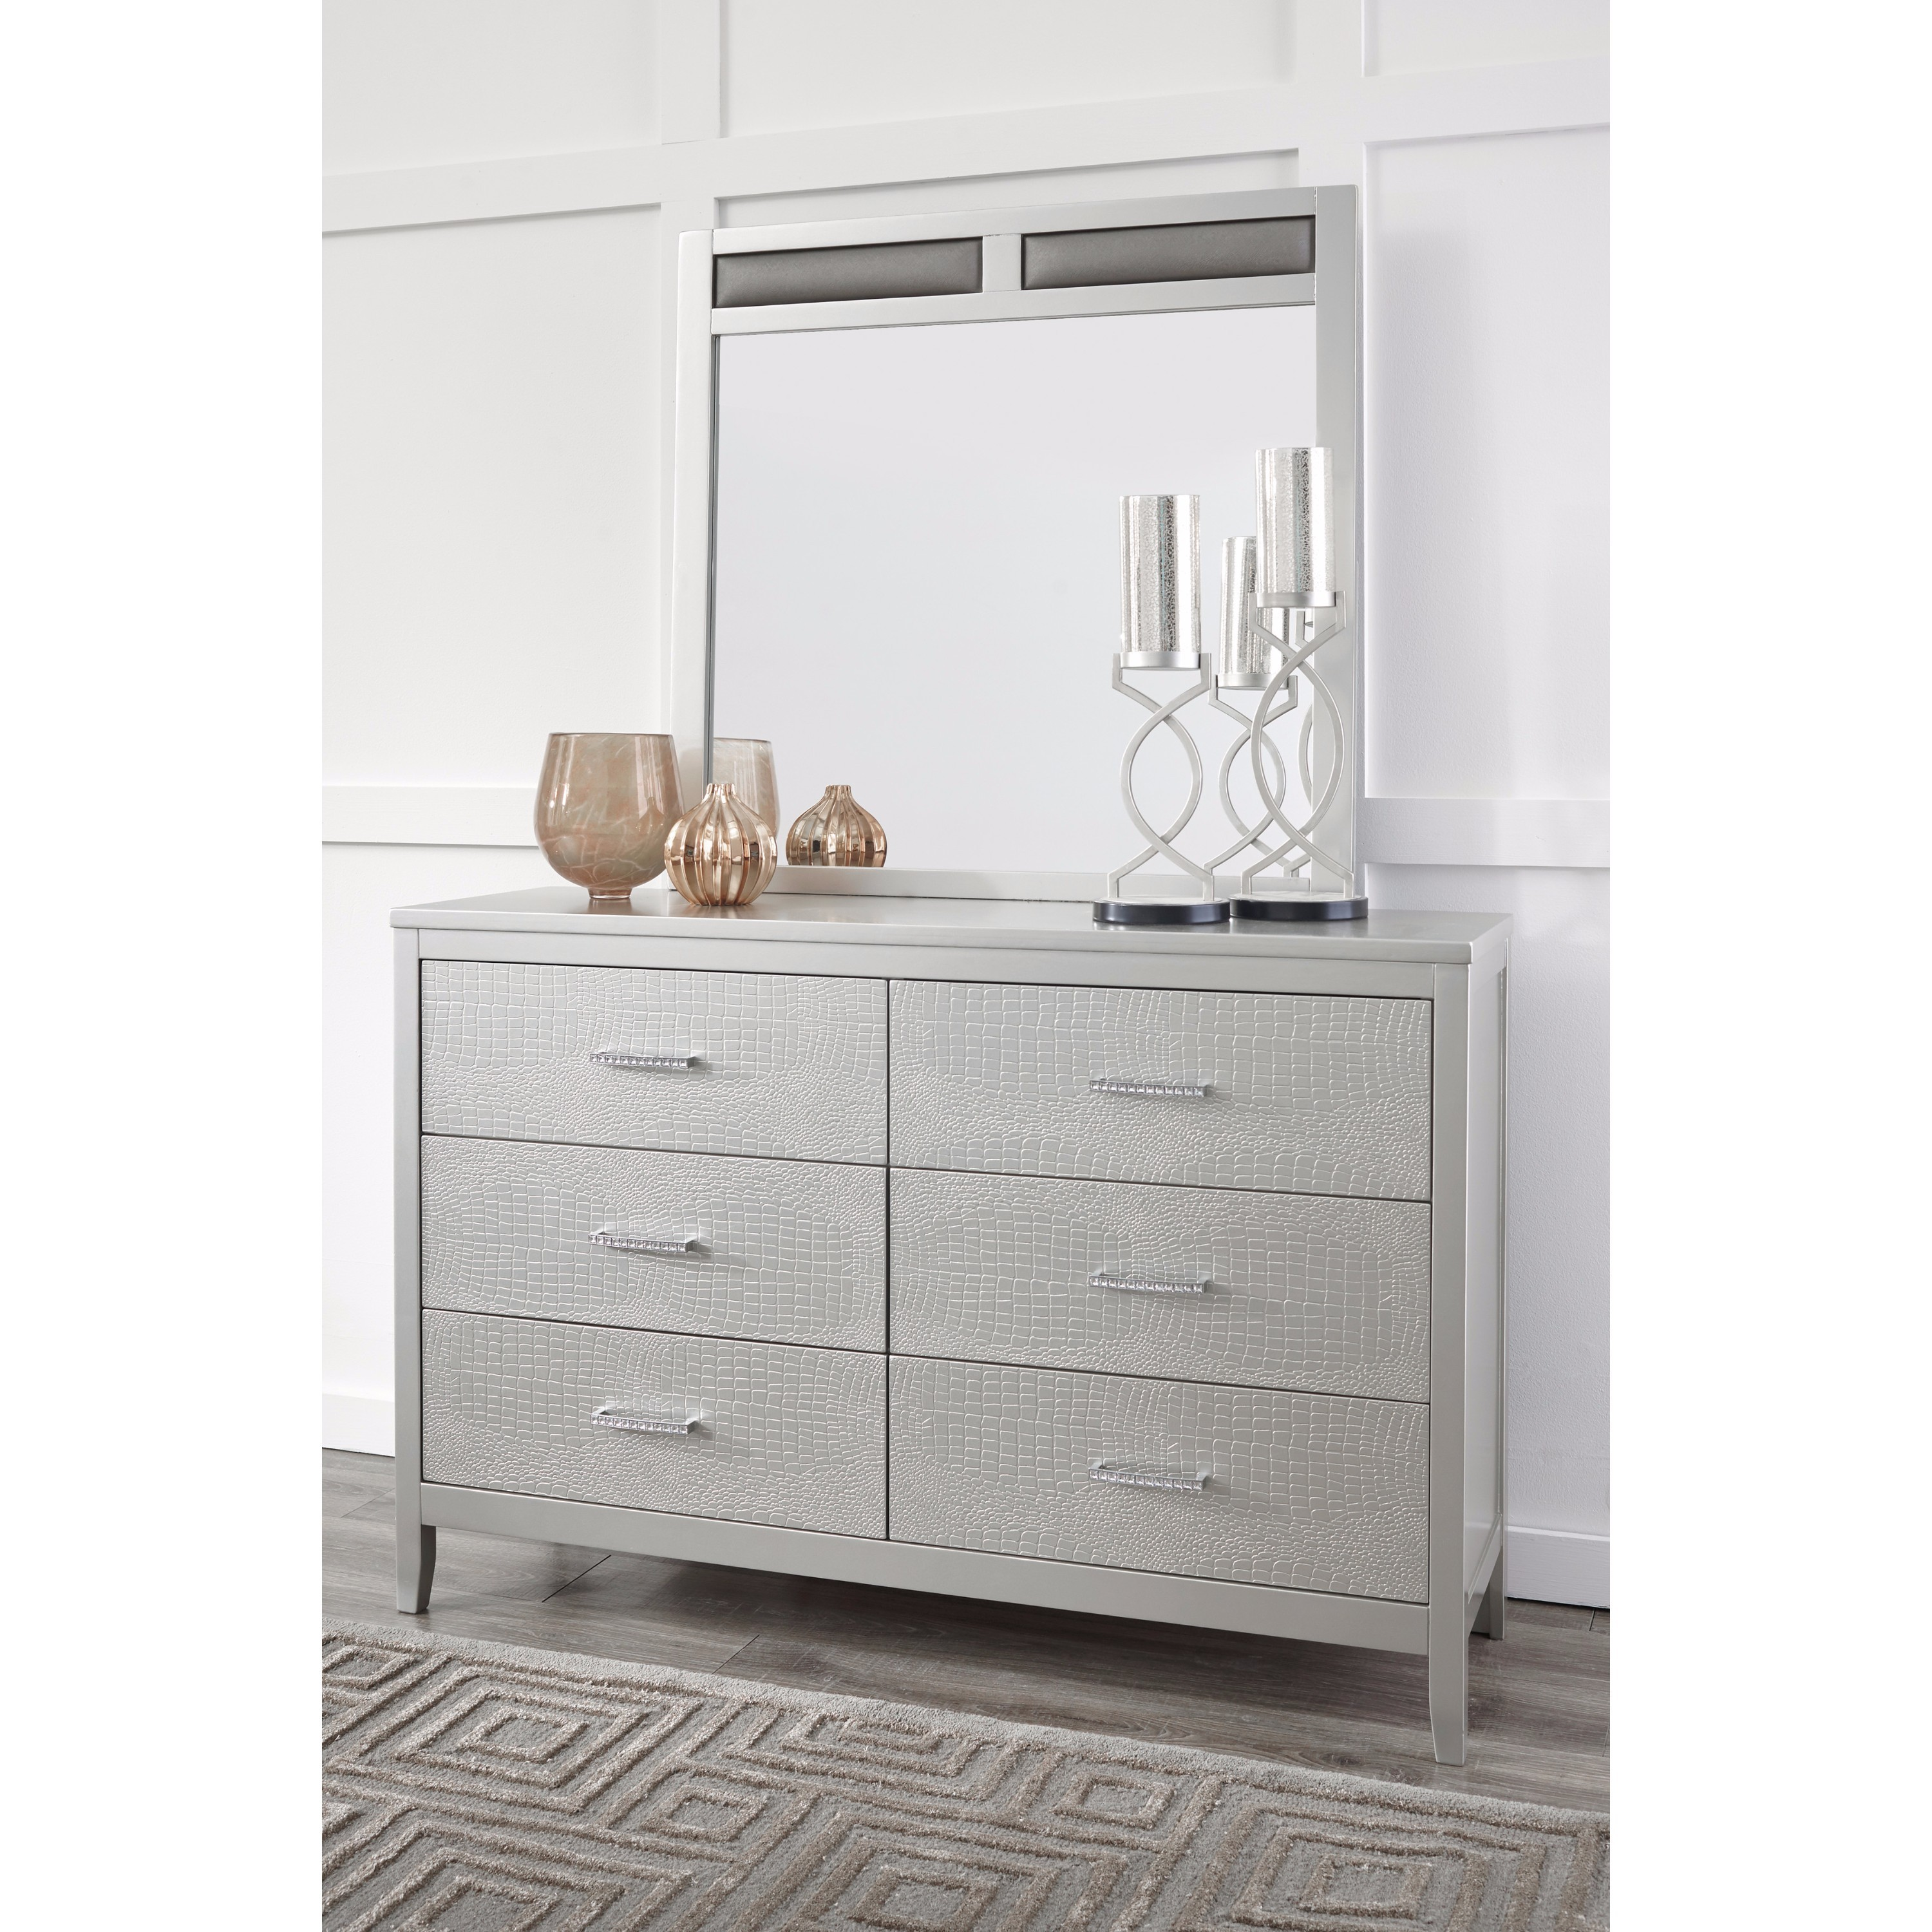 also dresser picture mirror dressers white for style astonishing bedroom trends cheap pic mirrors of gallery with and